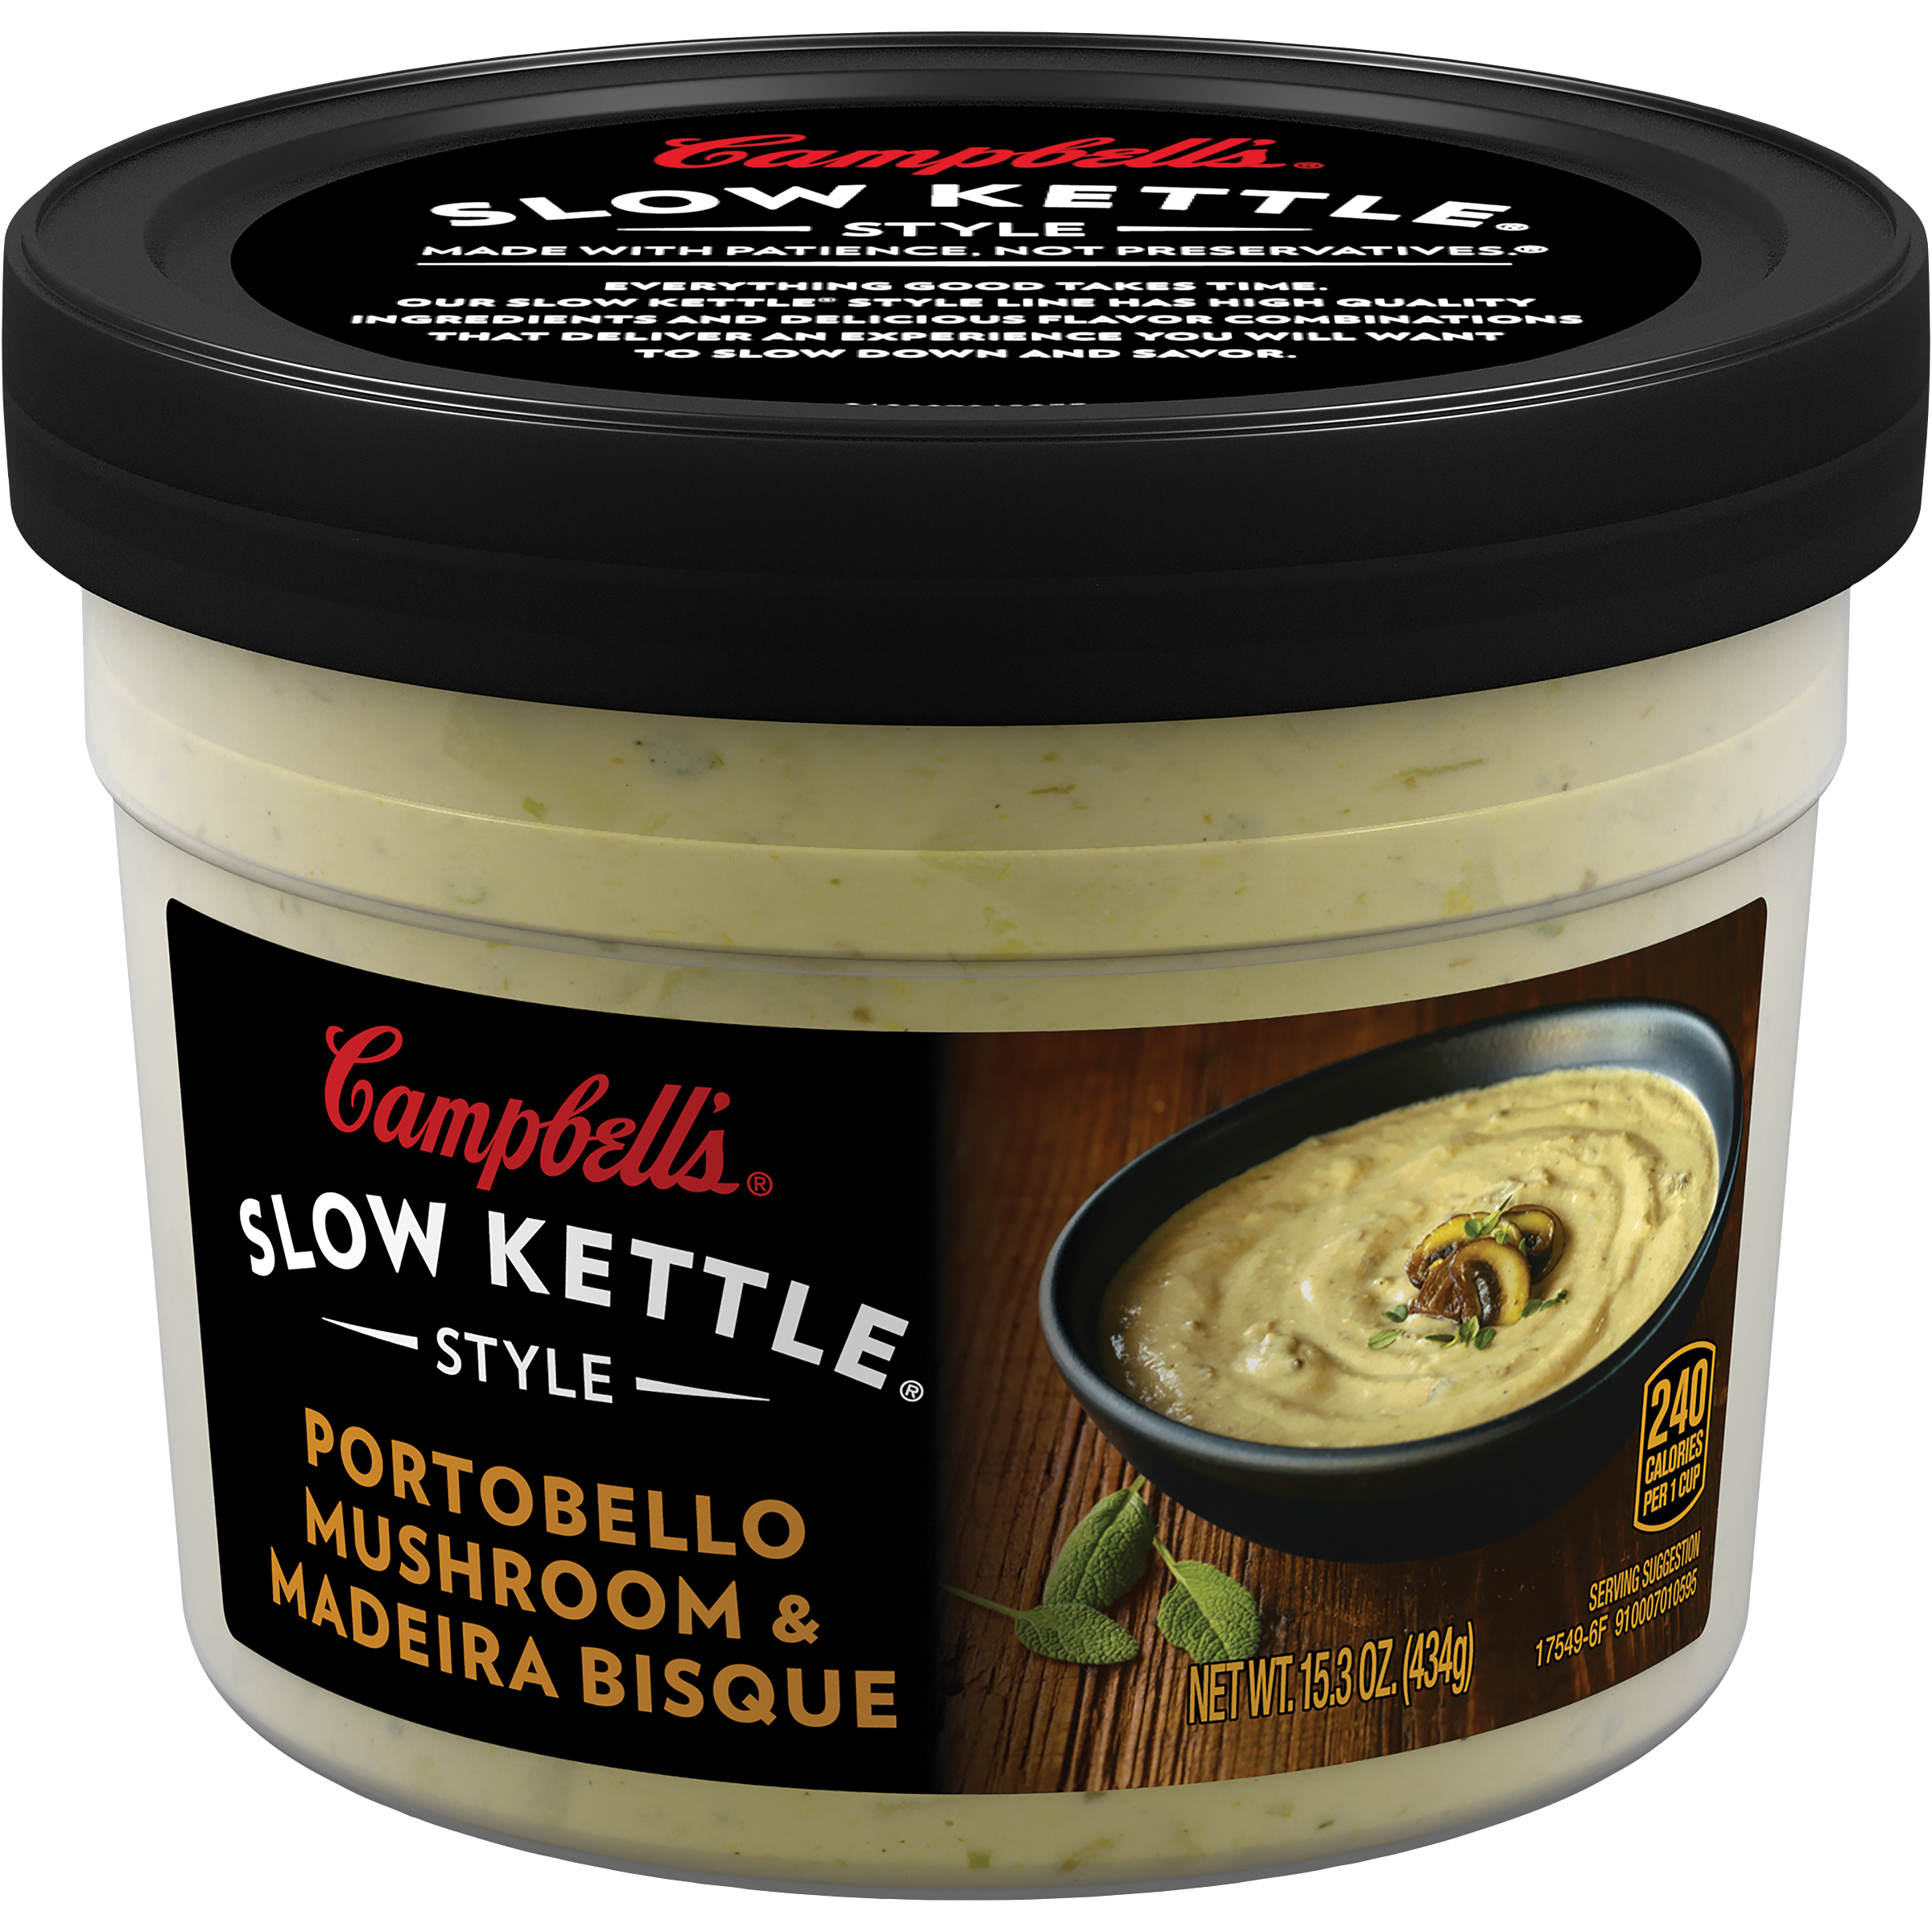 Campbell's Slow Kettle Style Portobello Mushroom & Madeira Bisque 15.3oz